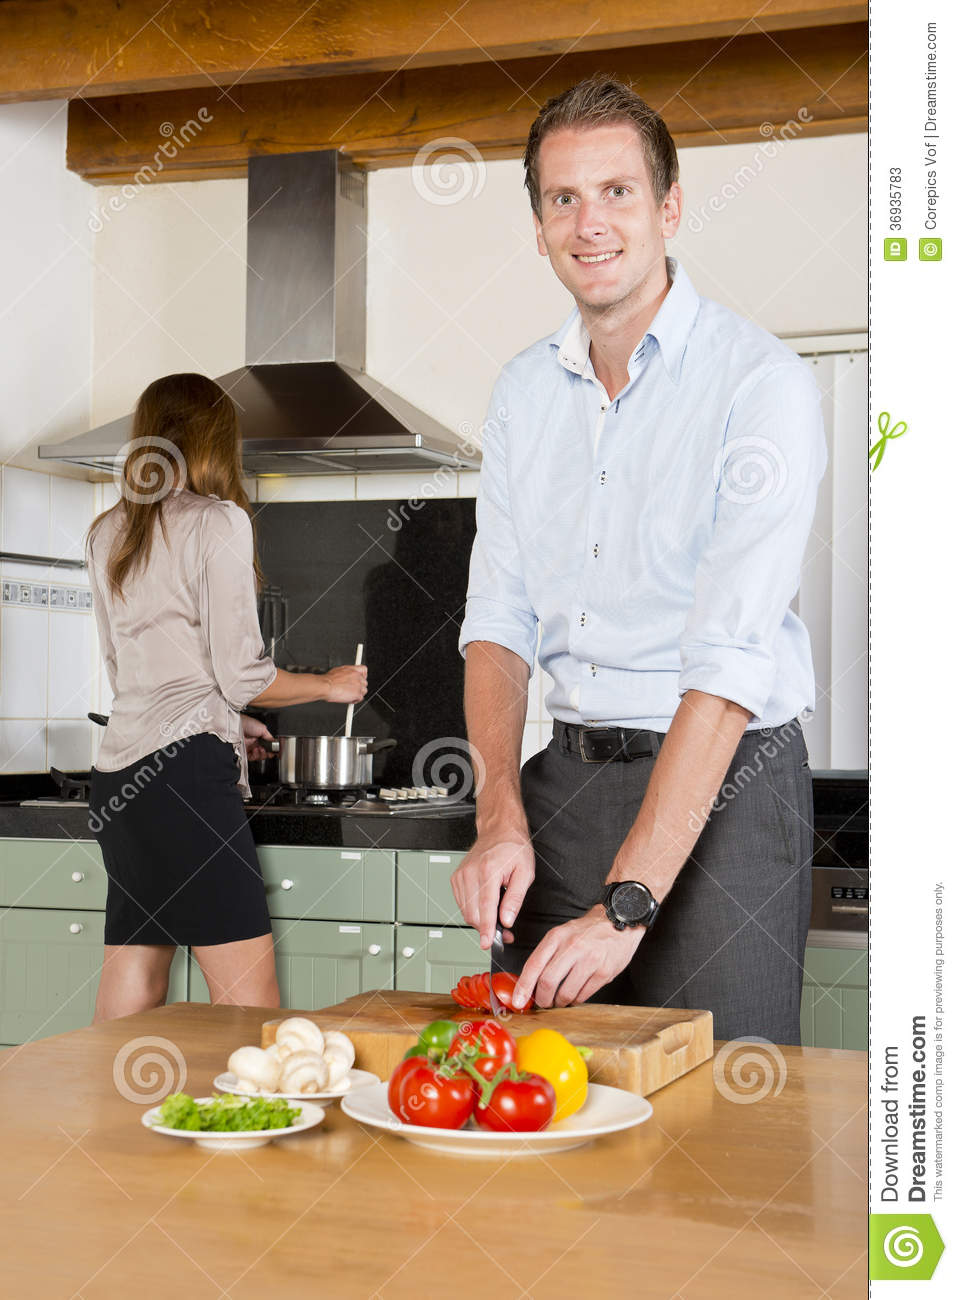 Career couple in kitchen